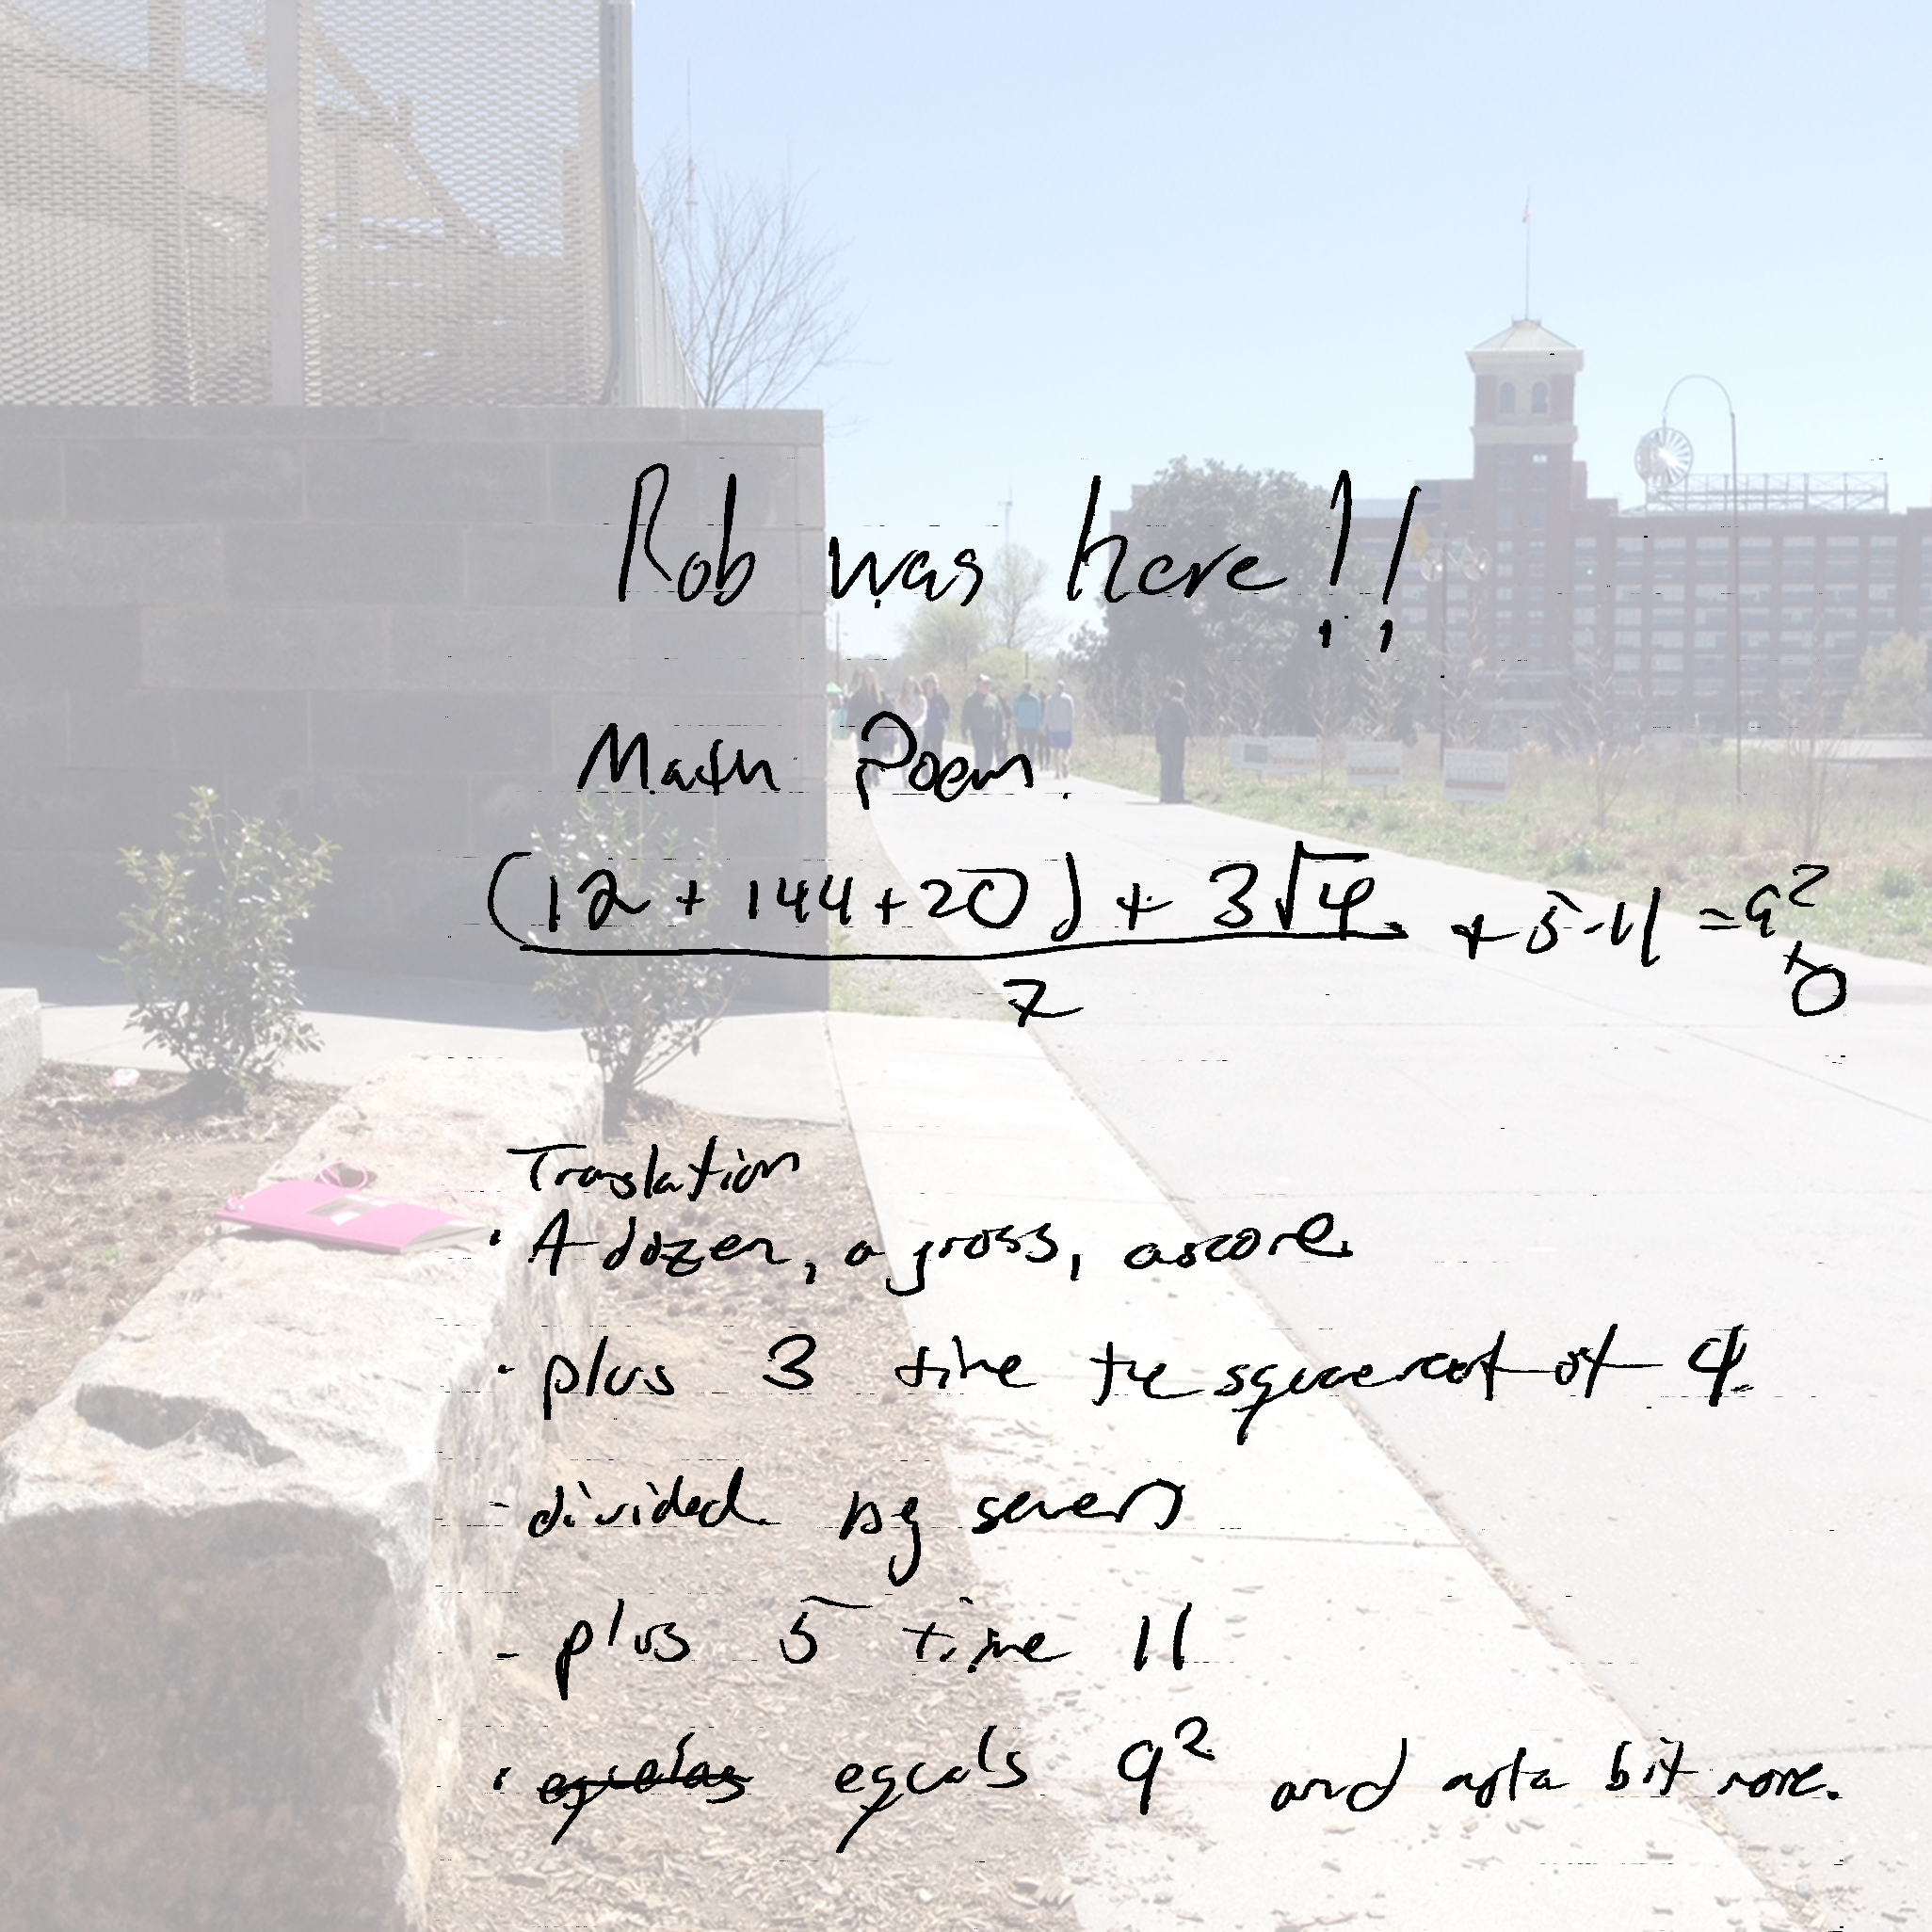 Rob was here!!  Math Poem.  -A dozen, a gross, a score  -plus 3 times the square root of 4  -divided by seven  -plus 5 times 11  -equals 9 squared and and a bit more.